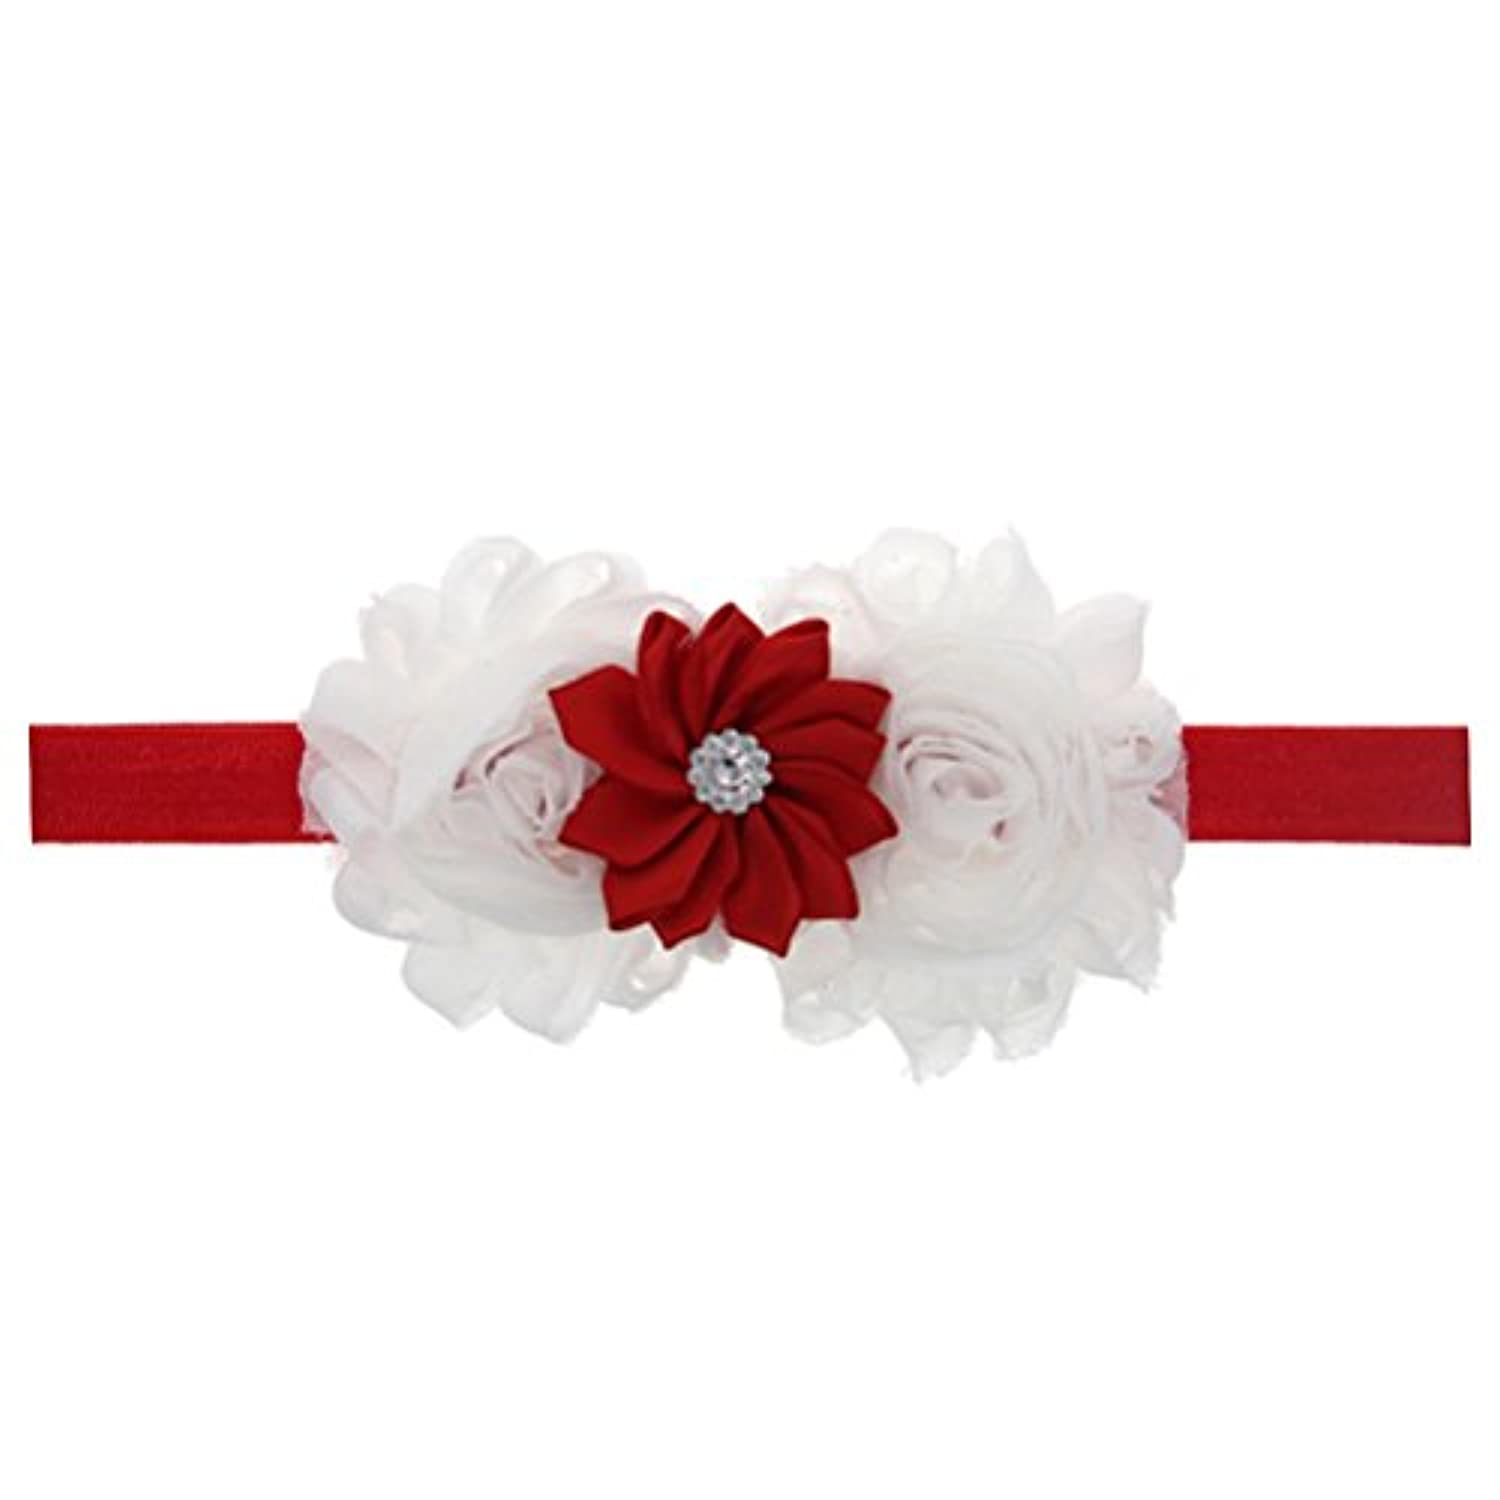 Zhhlaixing ベビー小物 Kids Baby Girls Soft Elastic Flowers Headband Hairband Hair Accessories for Christmas 5130